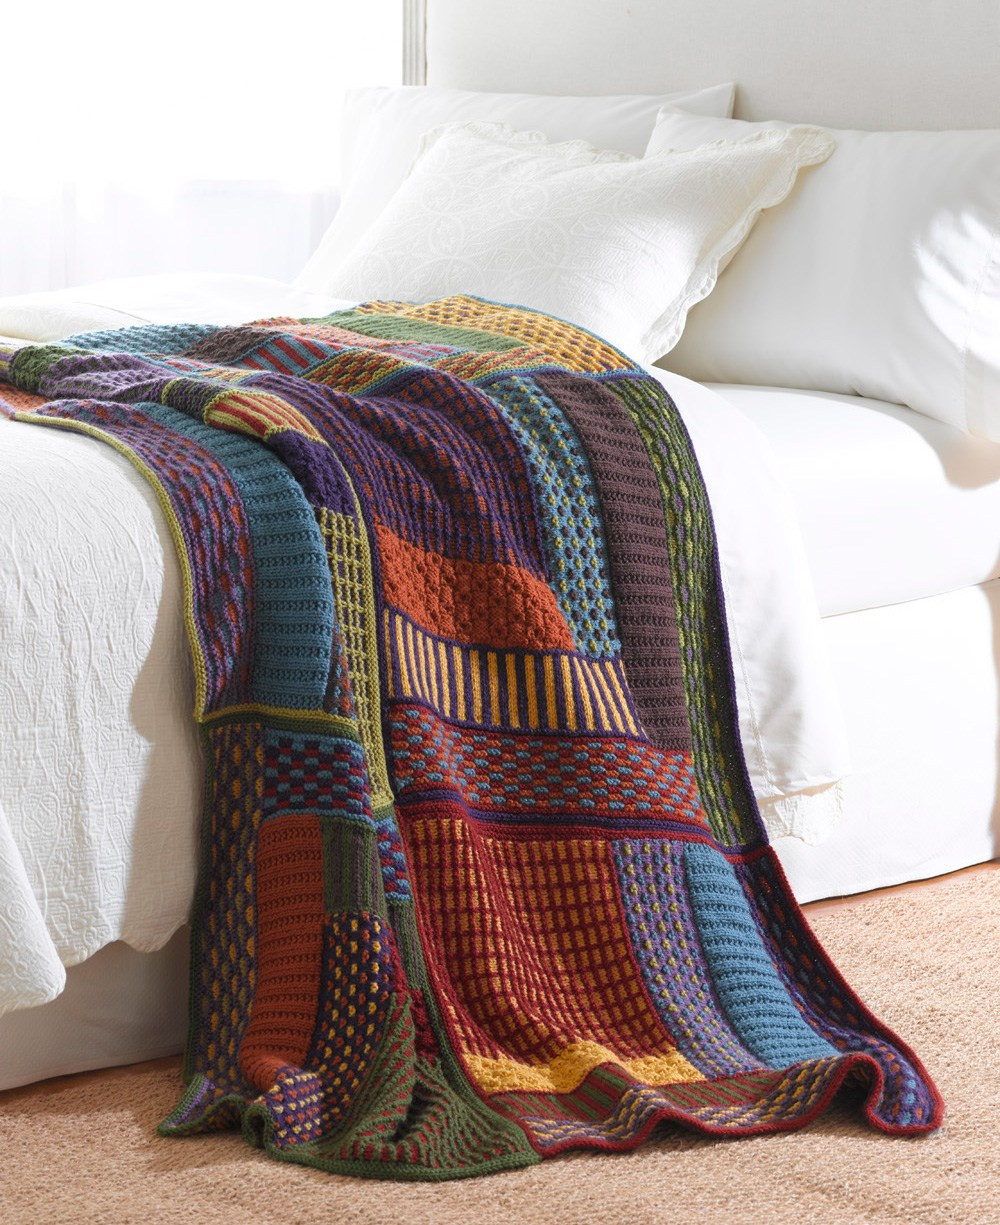 Awesome Sampler Knitting Patterns for Afghans Accessories and Knitted Throw Pattern Of Awesome 45 Photos Knitted Throw Pattern